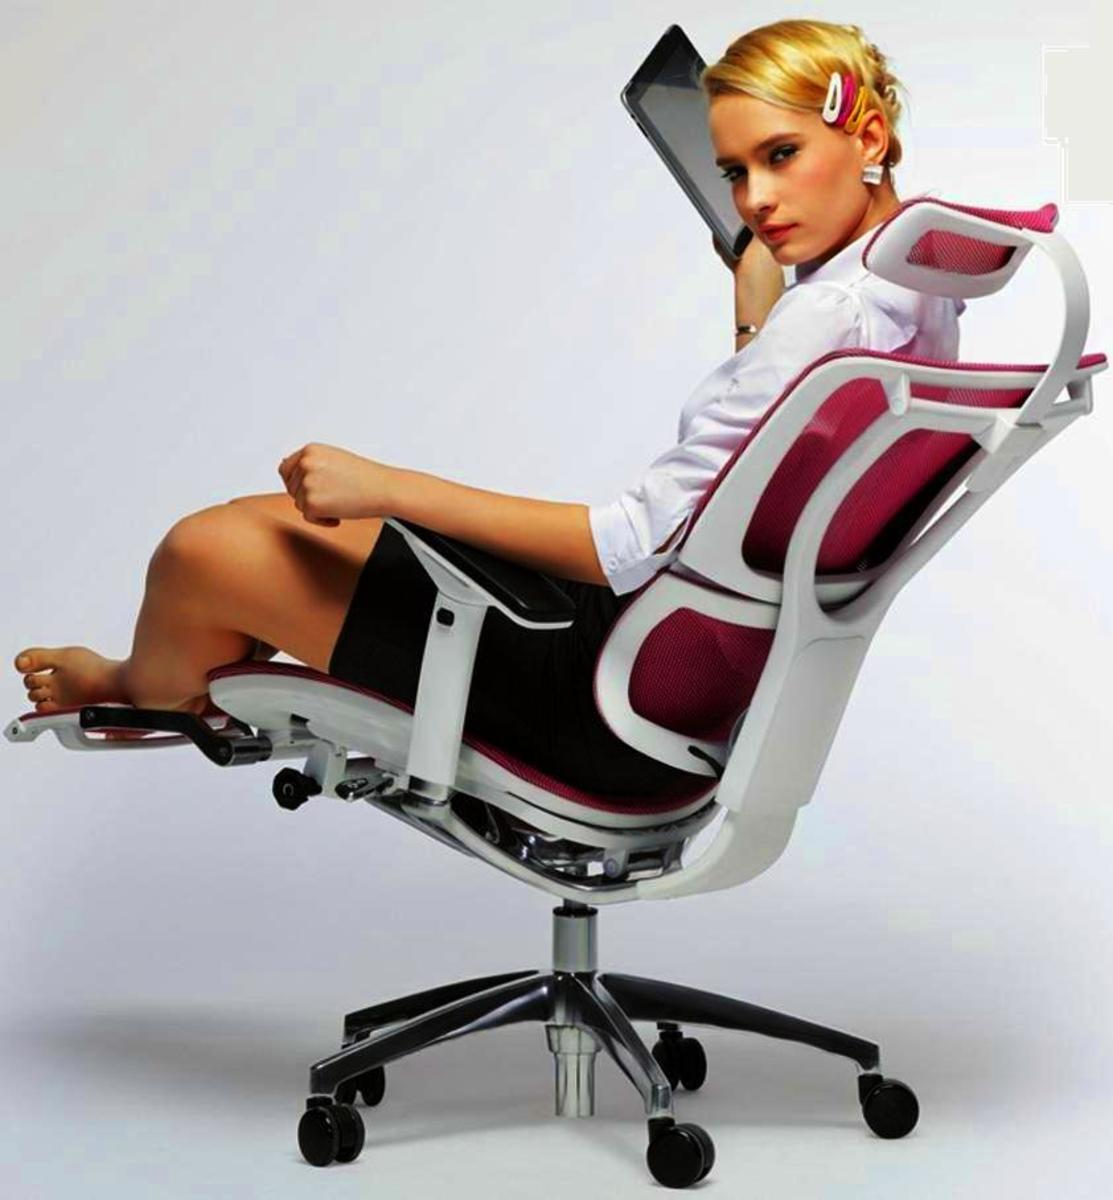 best ergonomic office chairs 2015 hubpages. Black Bedroom Furniture Sets. Home Design Ideas